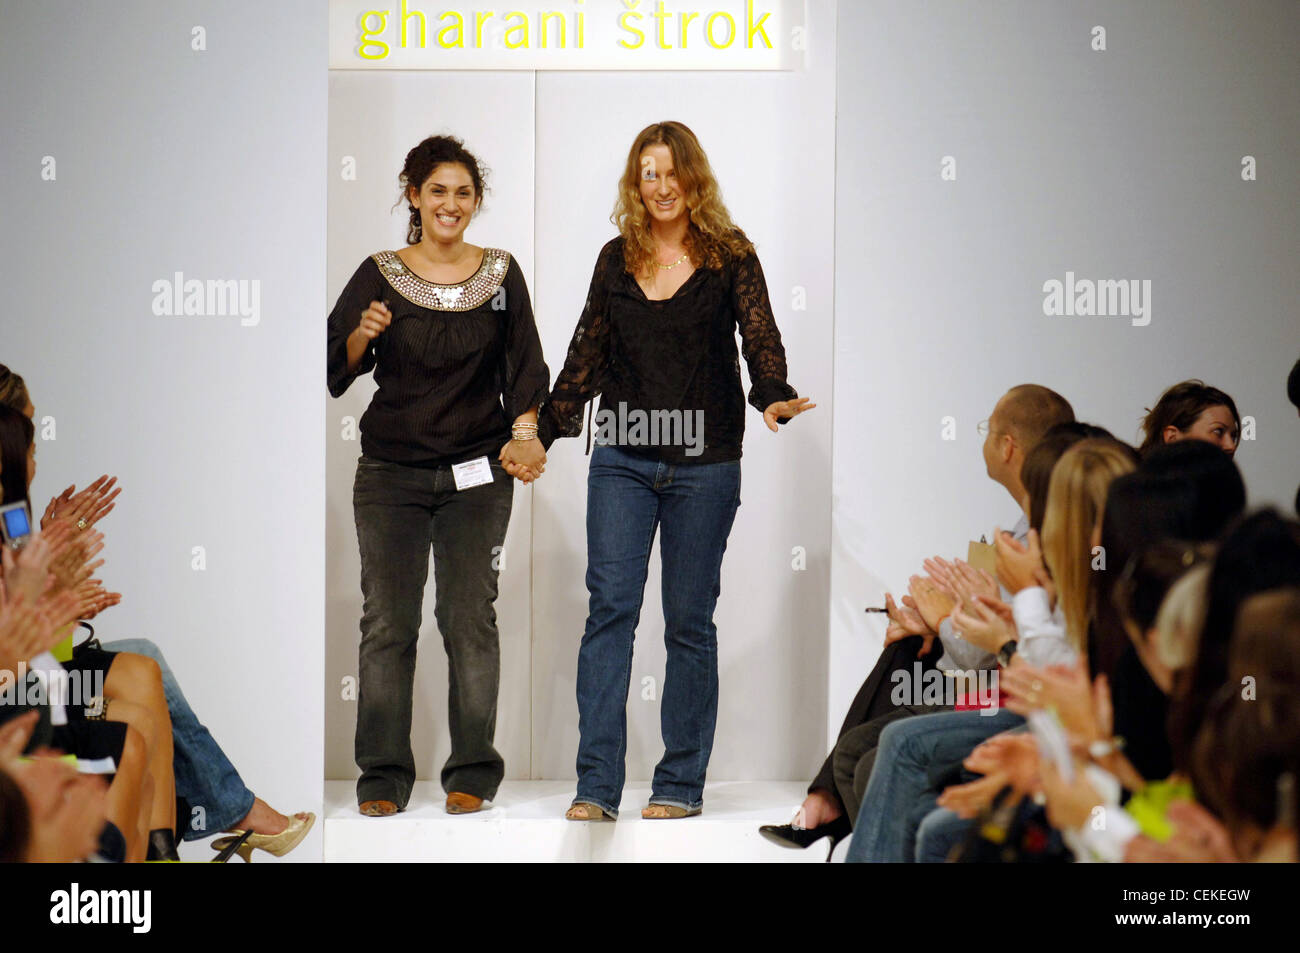 4884392cb7 Gharani Strok London Ready to Wear Spring Summer London design duo Nargess  Gharani and Vanya Strok (right) after their show